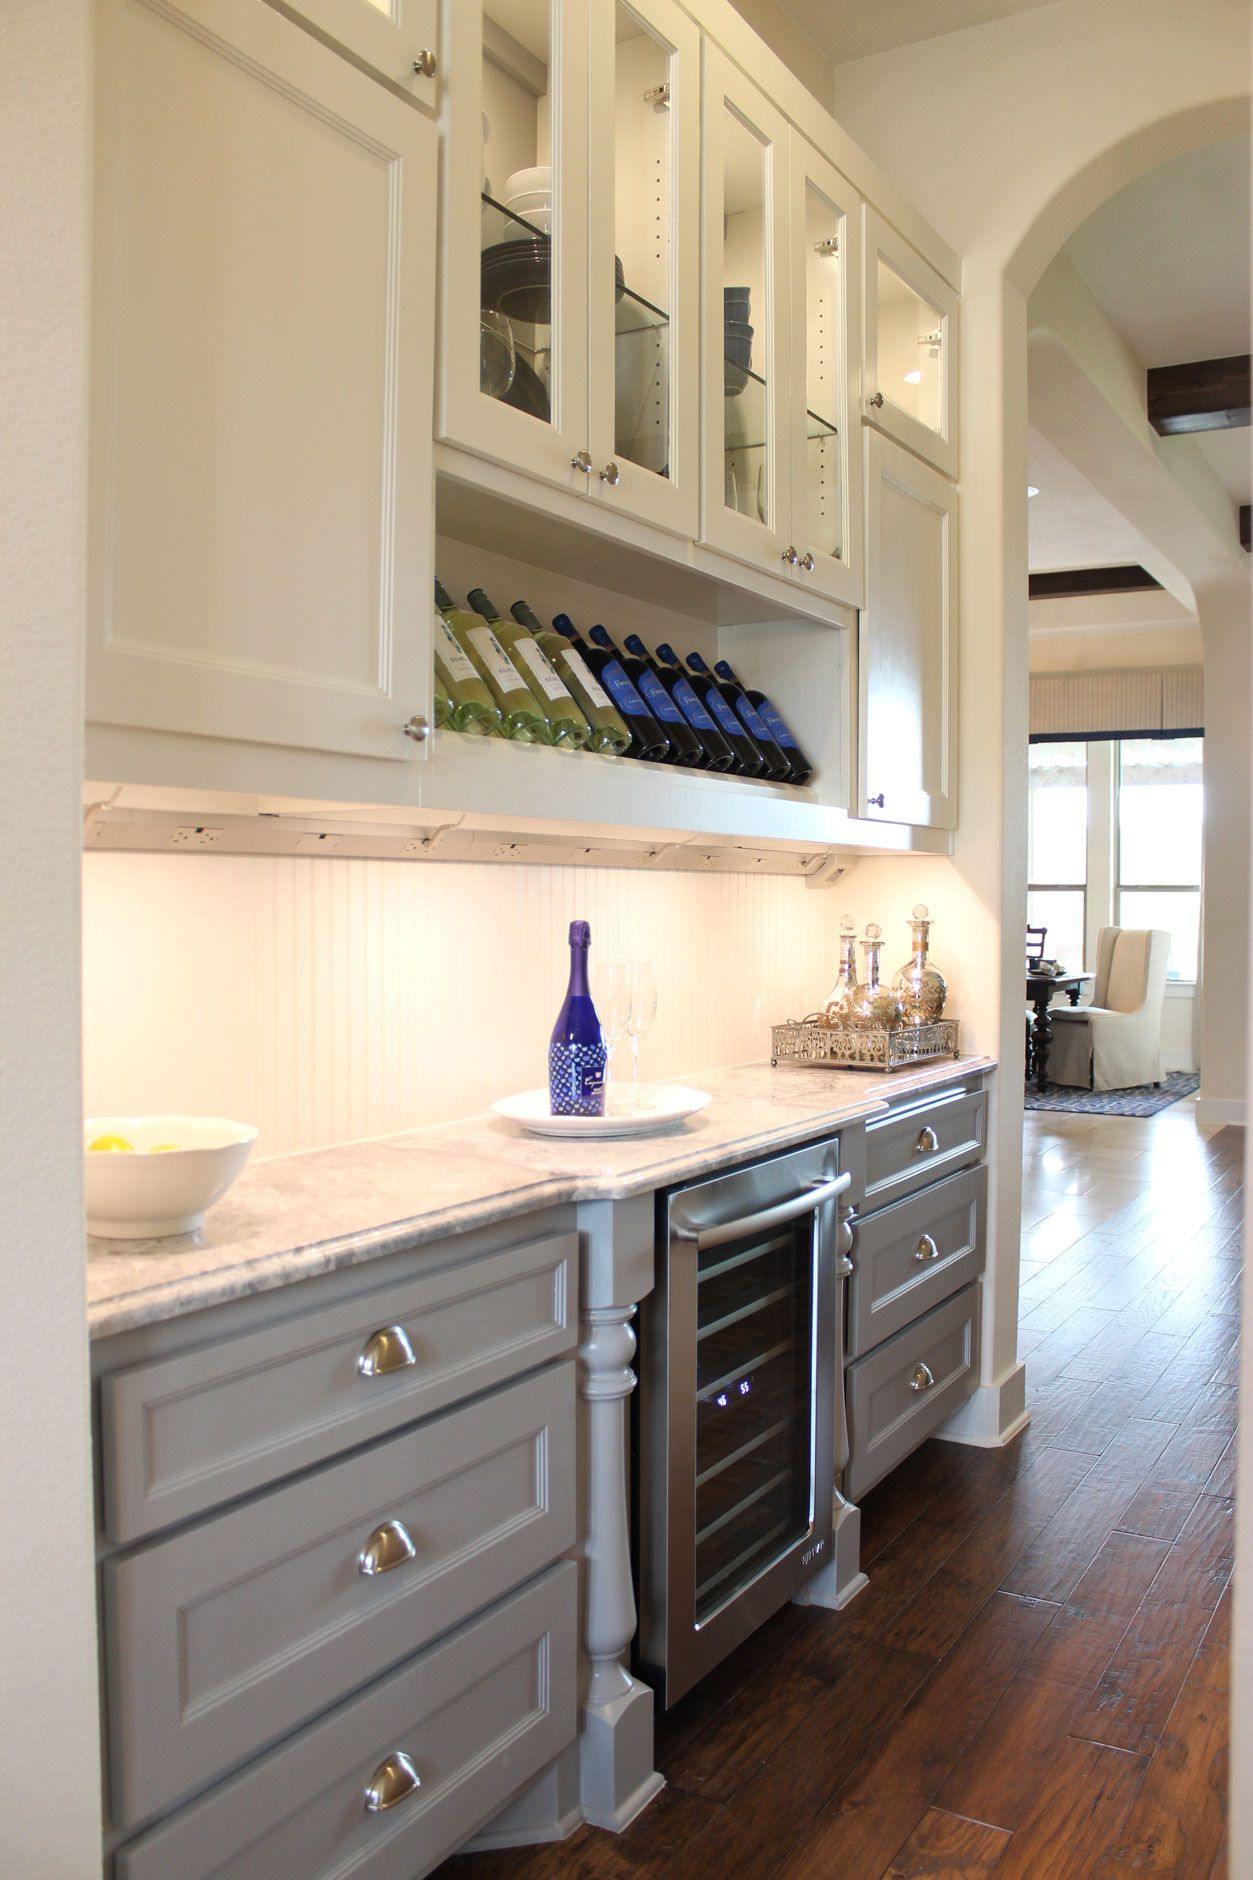 Burrows Cabinets Butlers Pantry White And Grey Wine Storage Pantry Cabinet Kitchen Butlers Pantry Grey Kitchen Cabinets